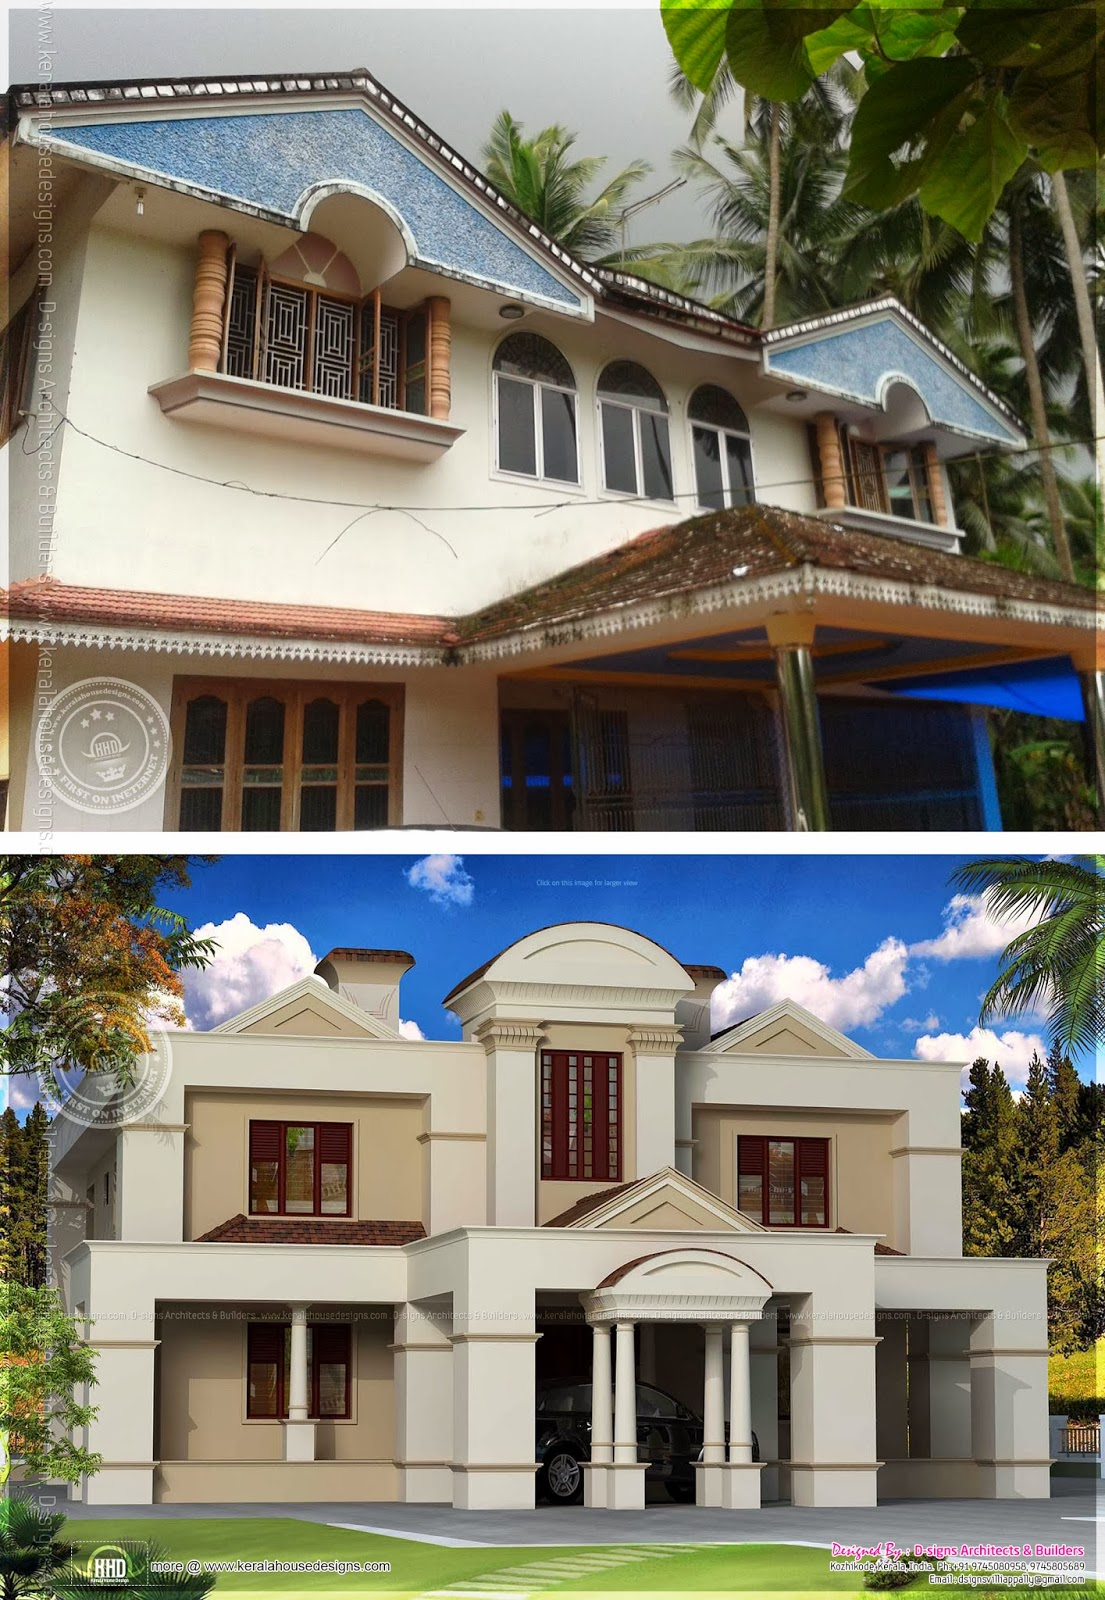 Traditional old house renovation plan to colonial style Old home renovation in kerala